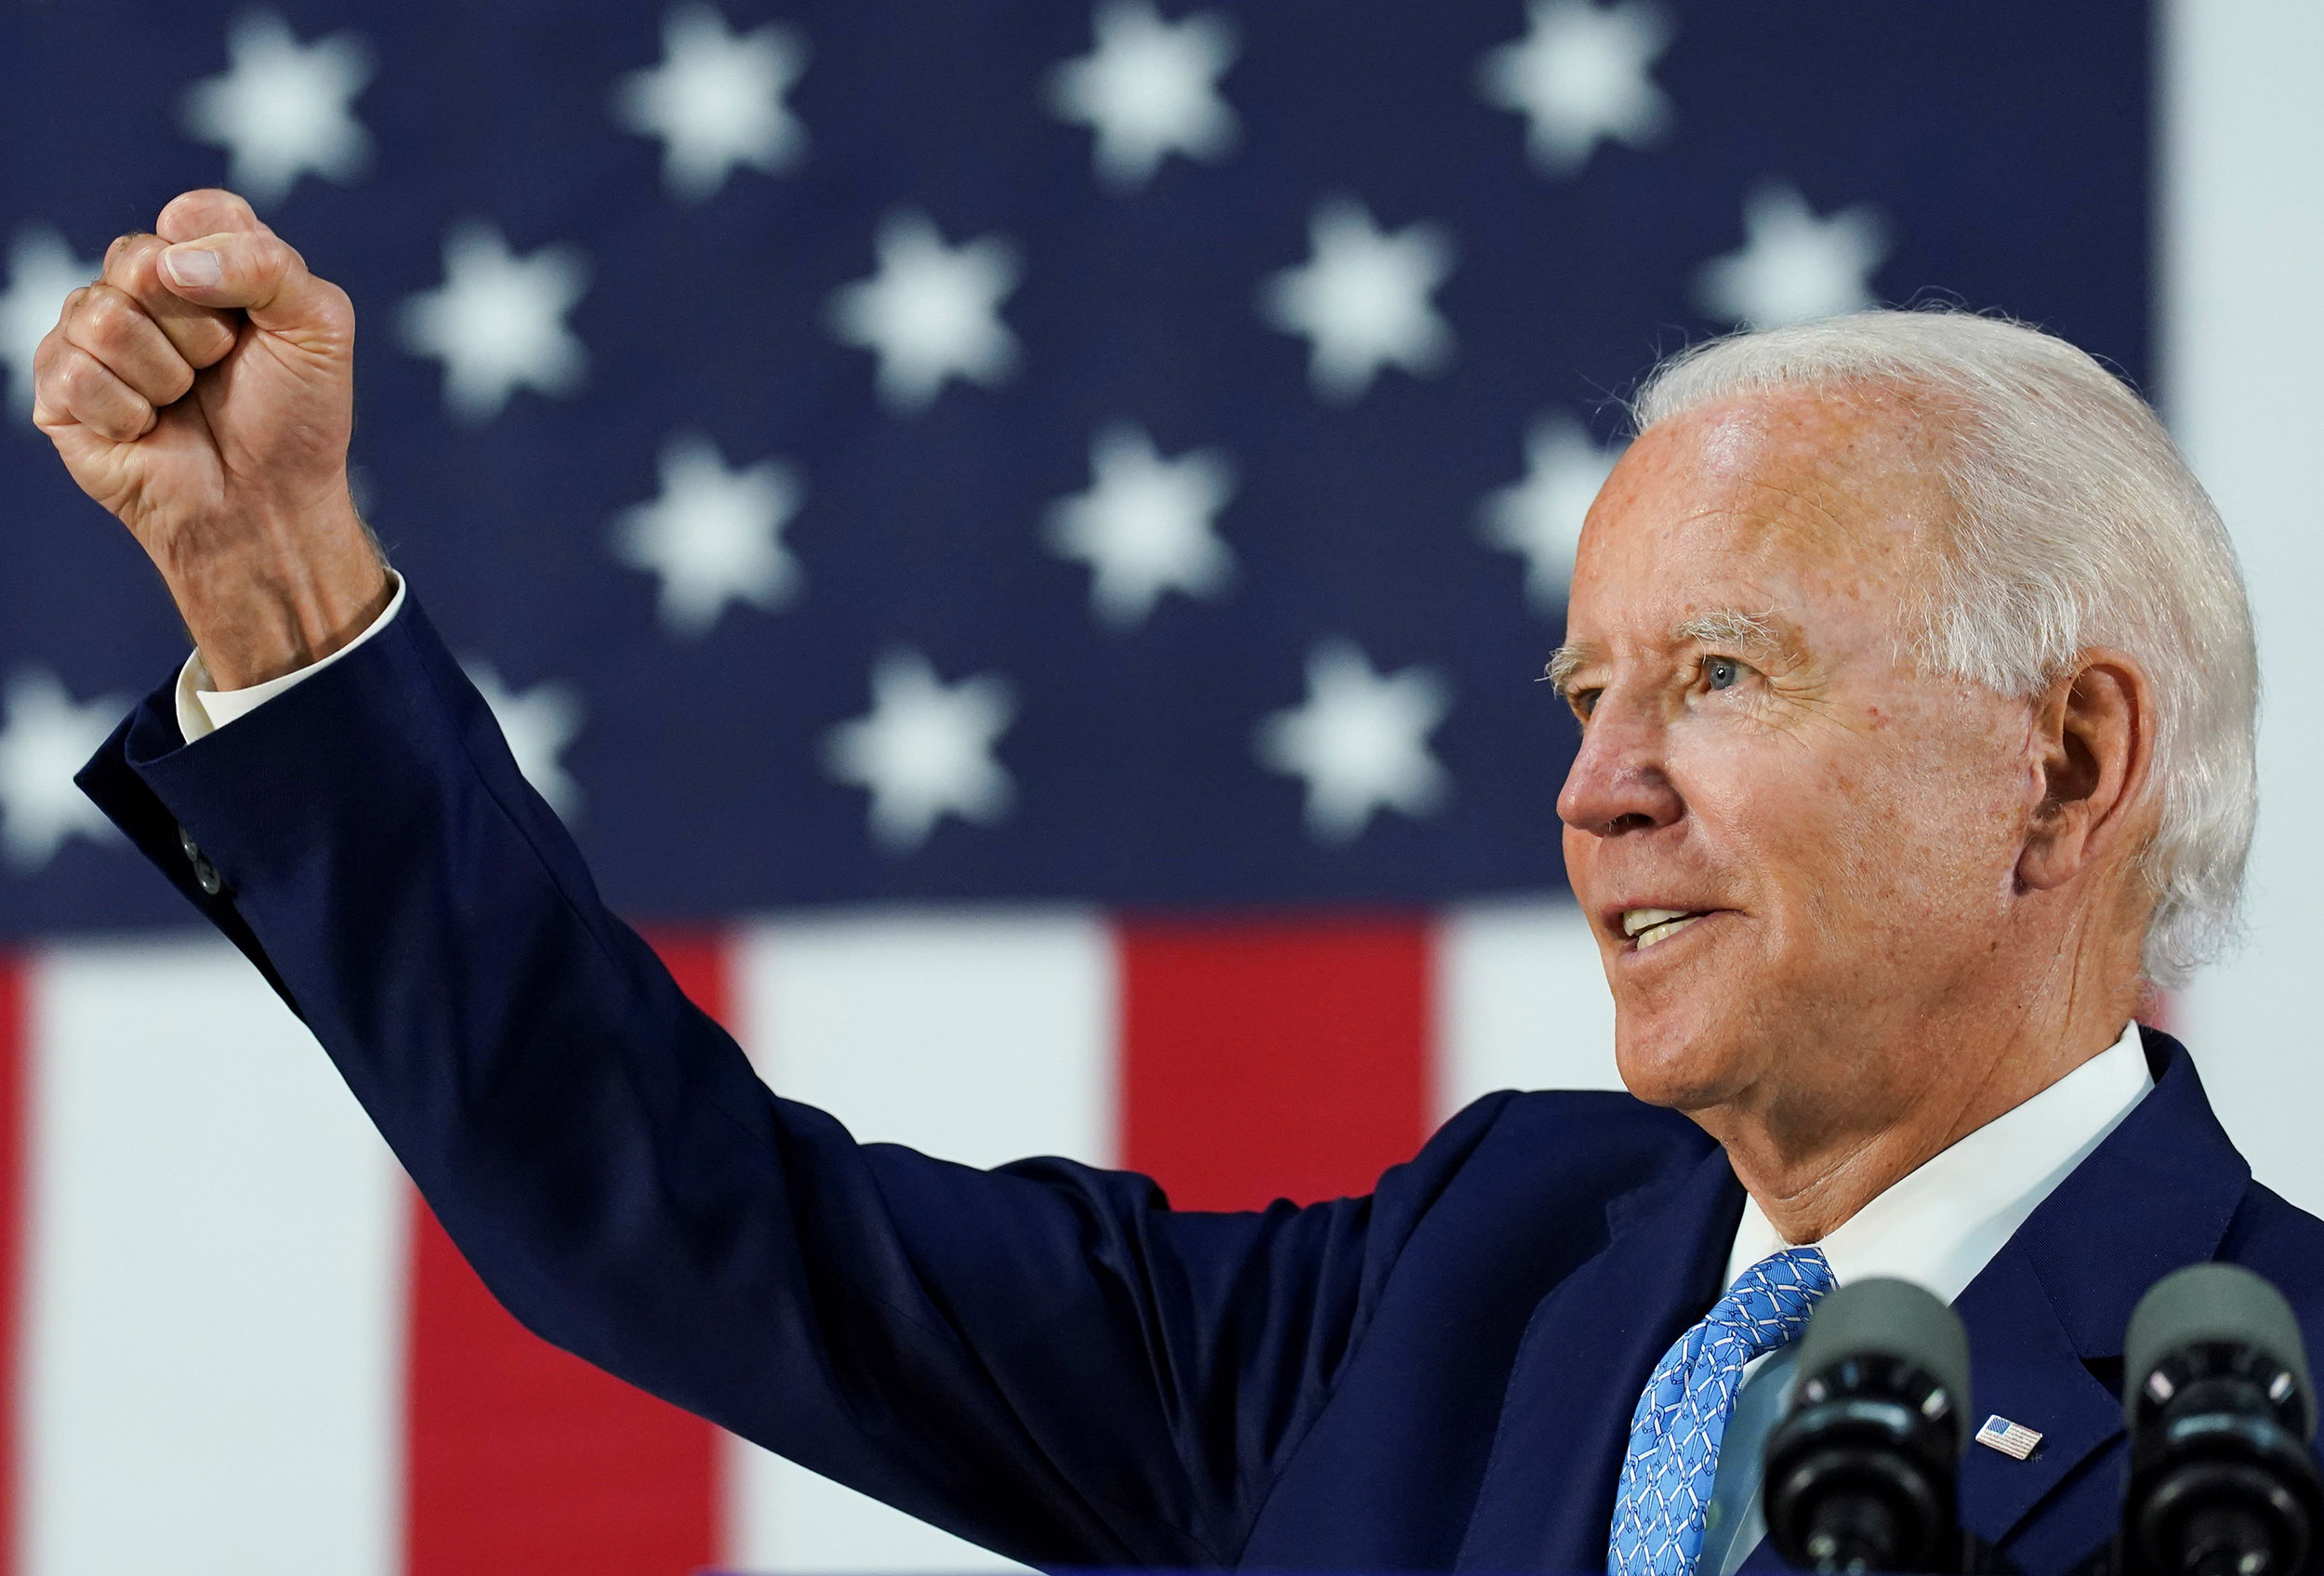 President-Elect Joe Biden stands in front of an American flag, looking to the left, with his right fist raised.